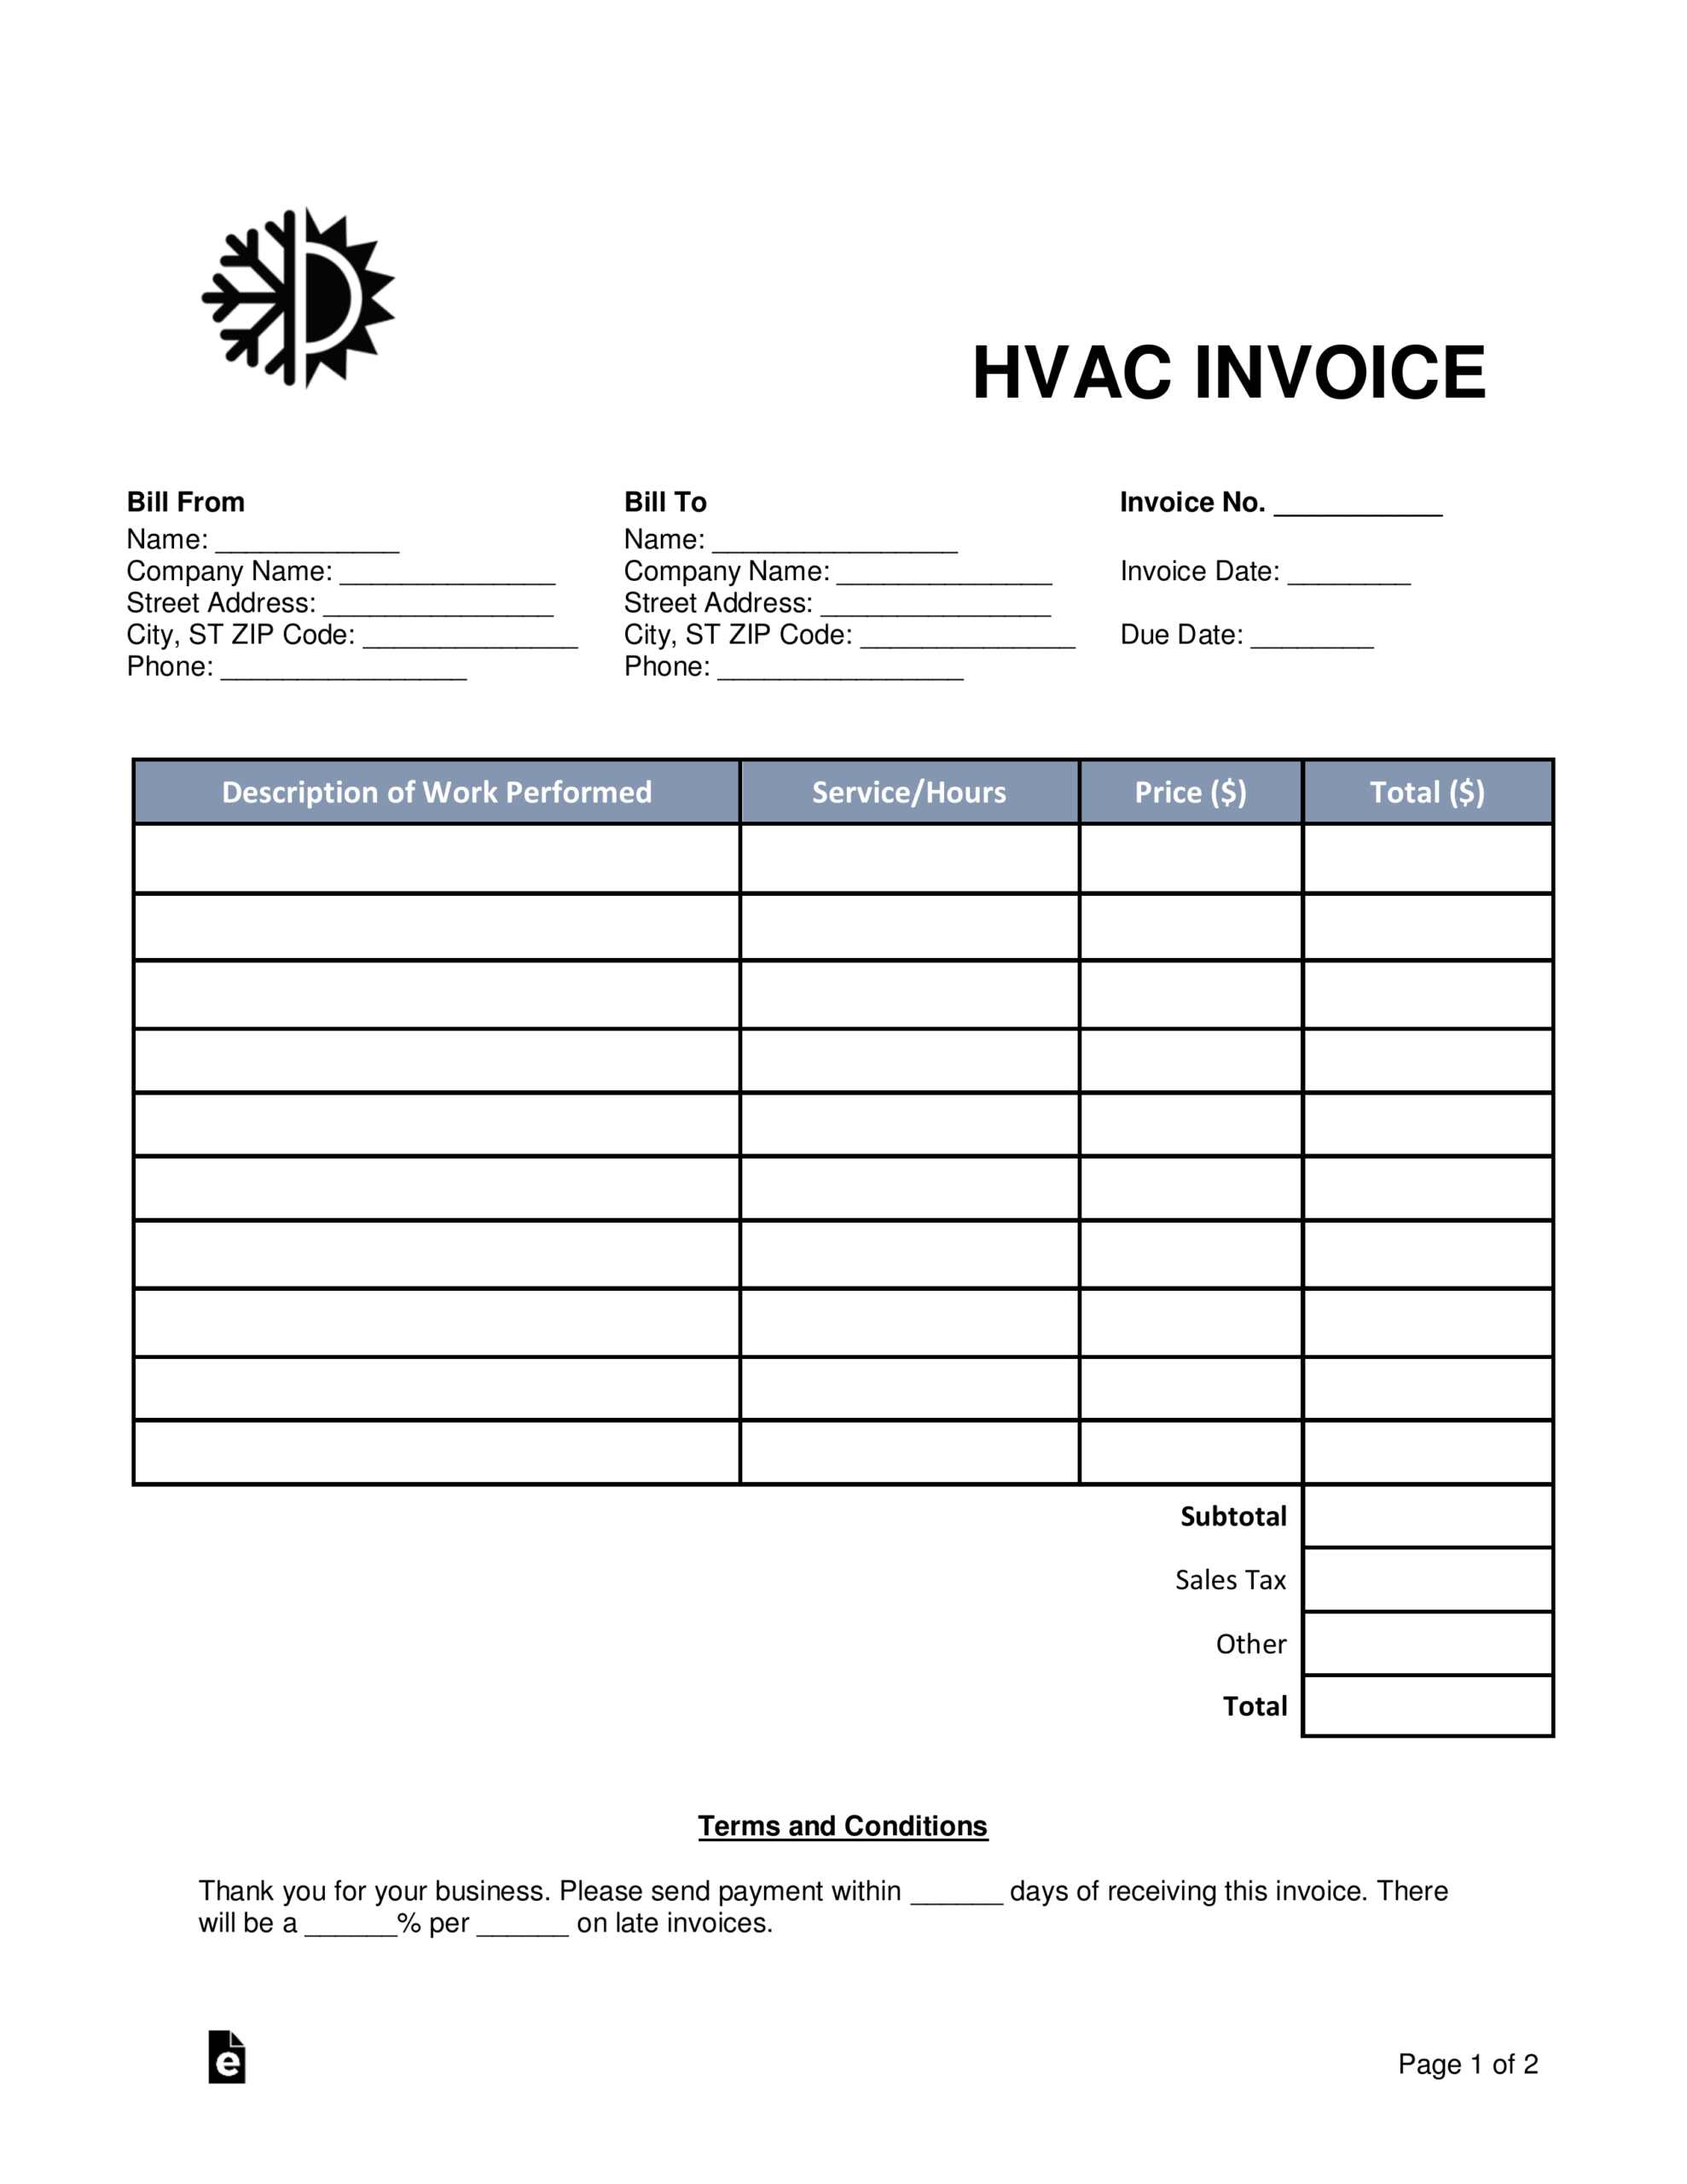 Free Hvac Invoice Template - Word | Pdf | Eforms – Free Regarding Air Conditioning Invoice Template